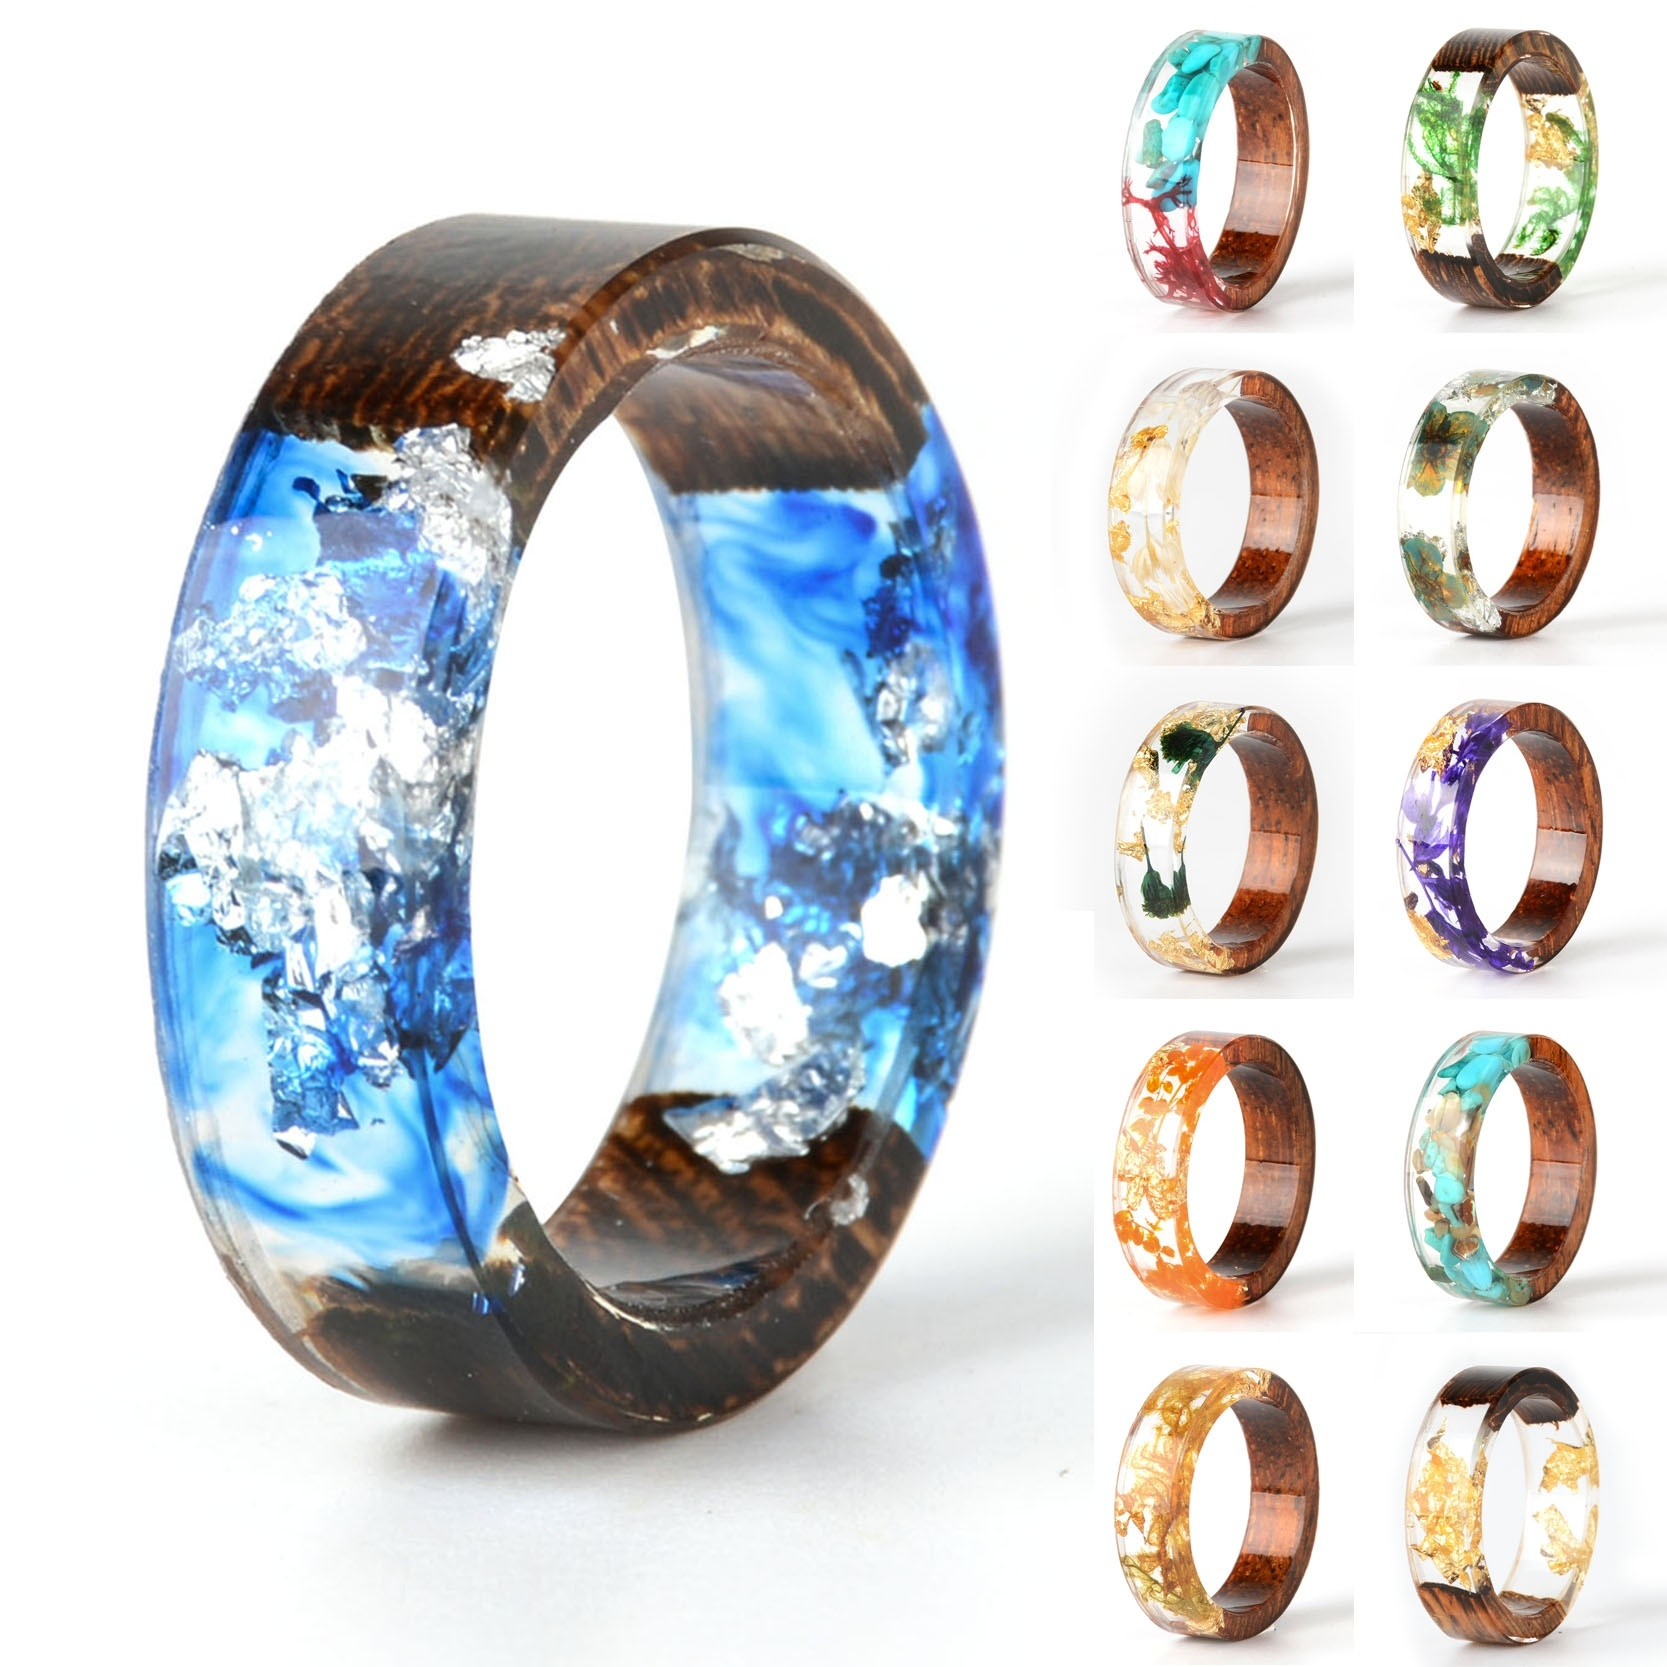 Handmade DIY Romantic Dried Real Flower Wood Resin Ring Gold/Silver Foil Inside Ring Women Wedding Party Ring Gifts For Lover